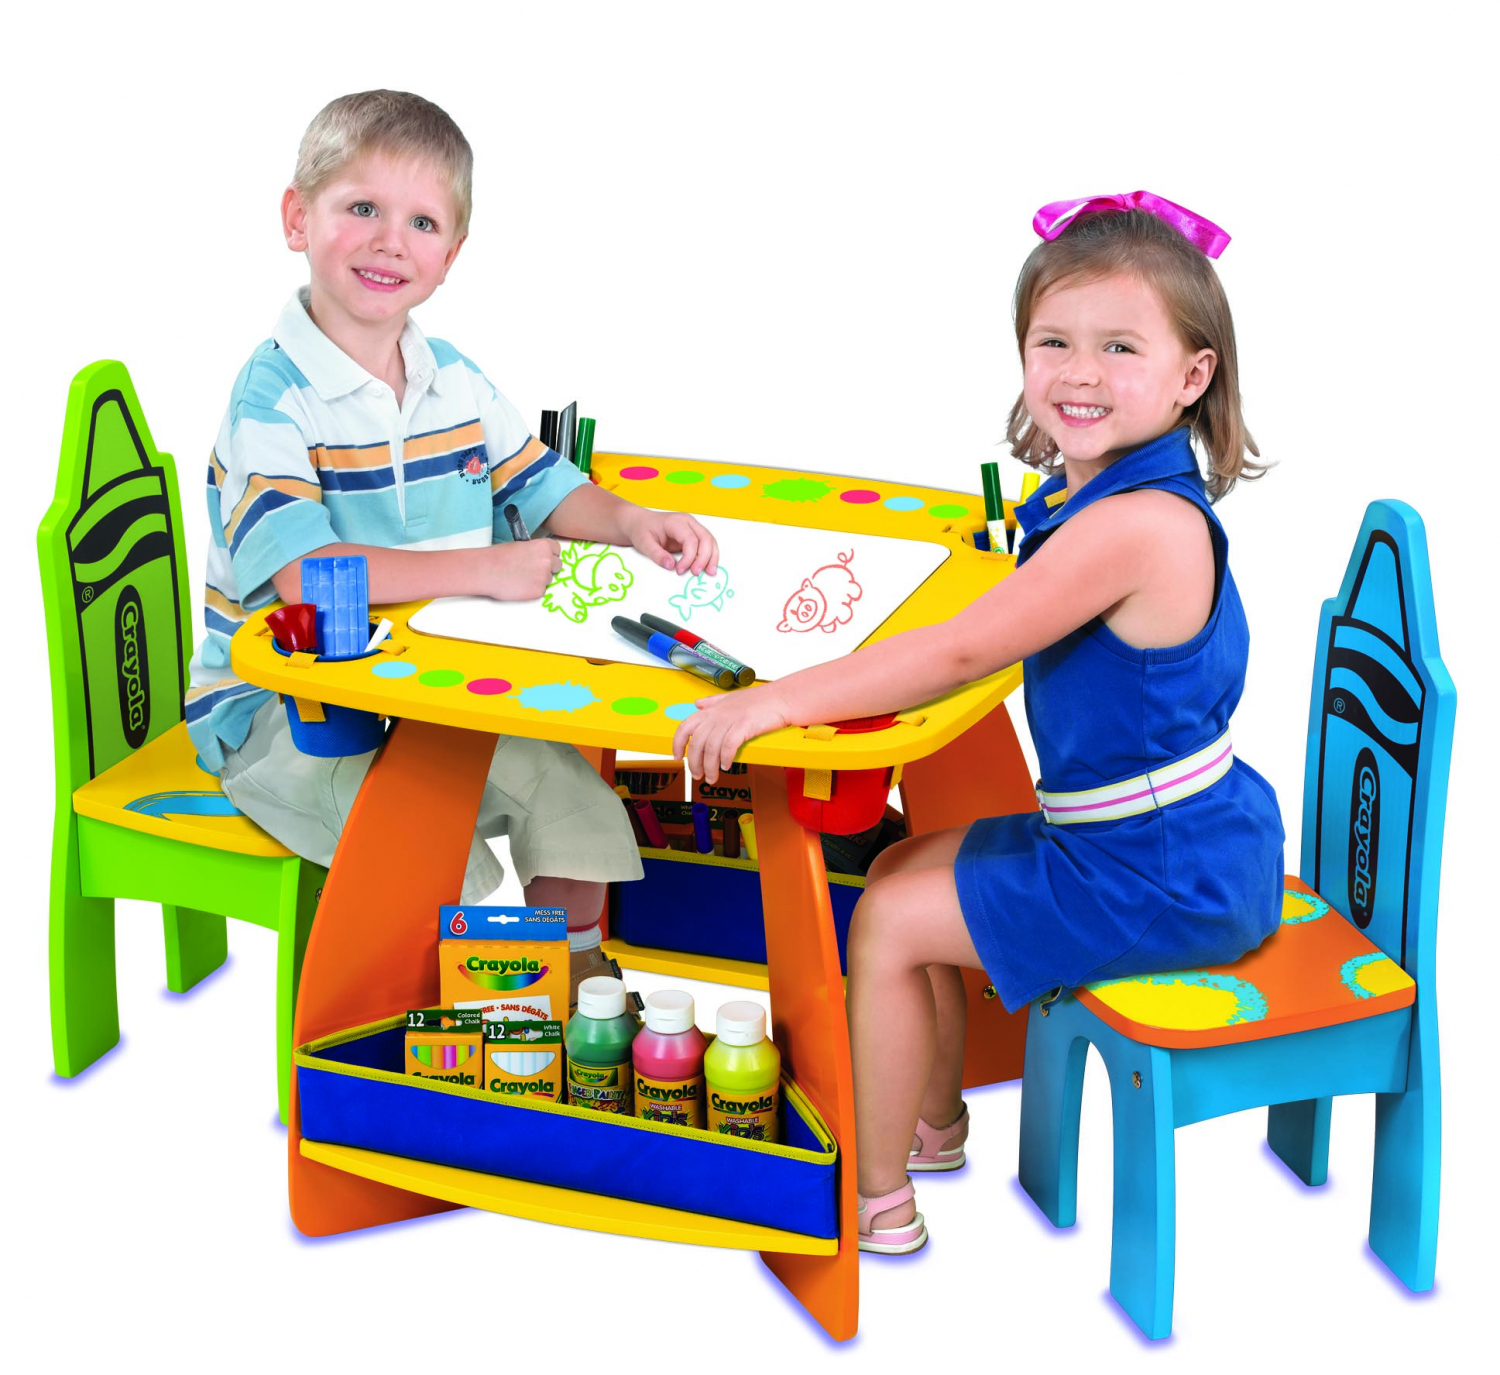 Details About Kids Table Chair Wooden Children Play Art Toddler Wood Playhouse Furniture Set